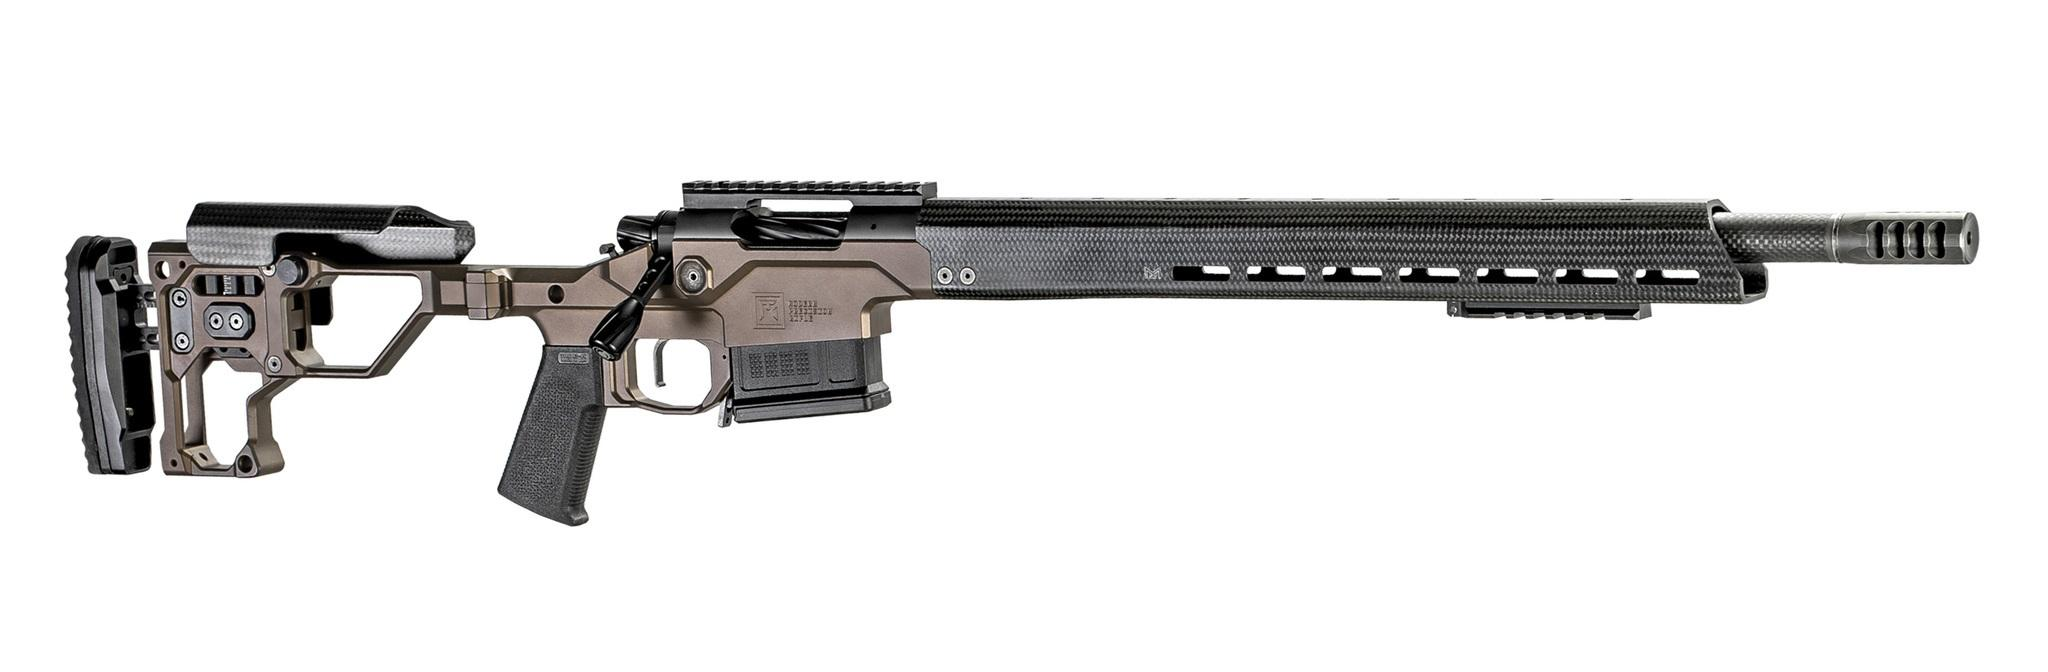 MPR 300PRC CHASSIS BROWN 26 - 801-03018-00